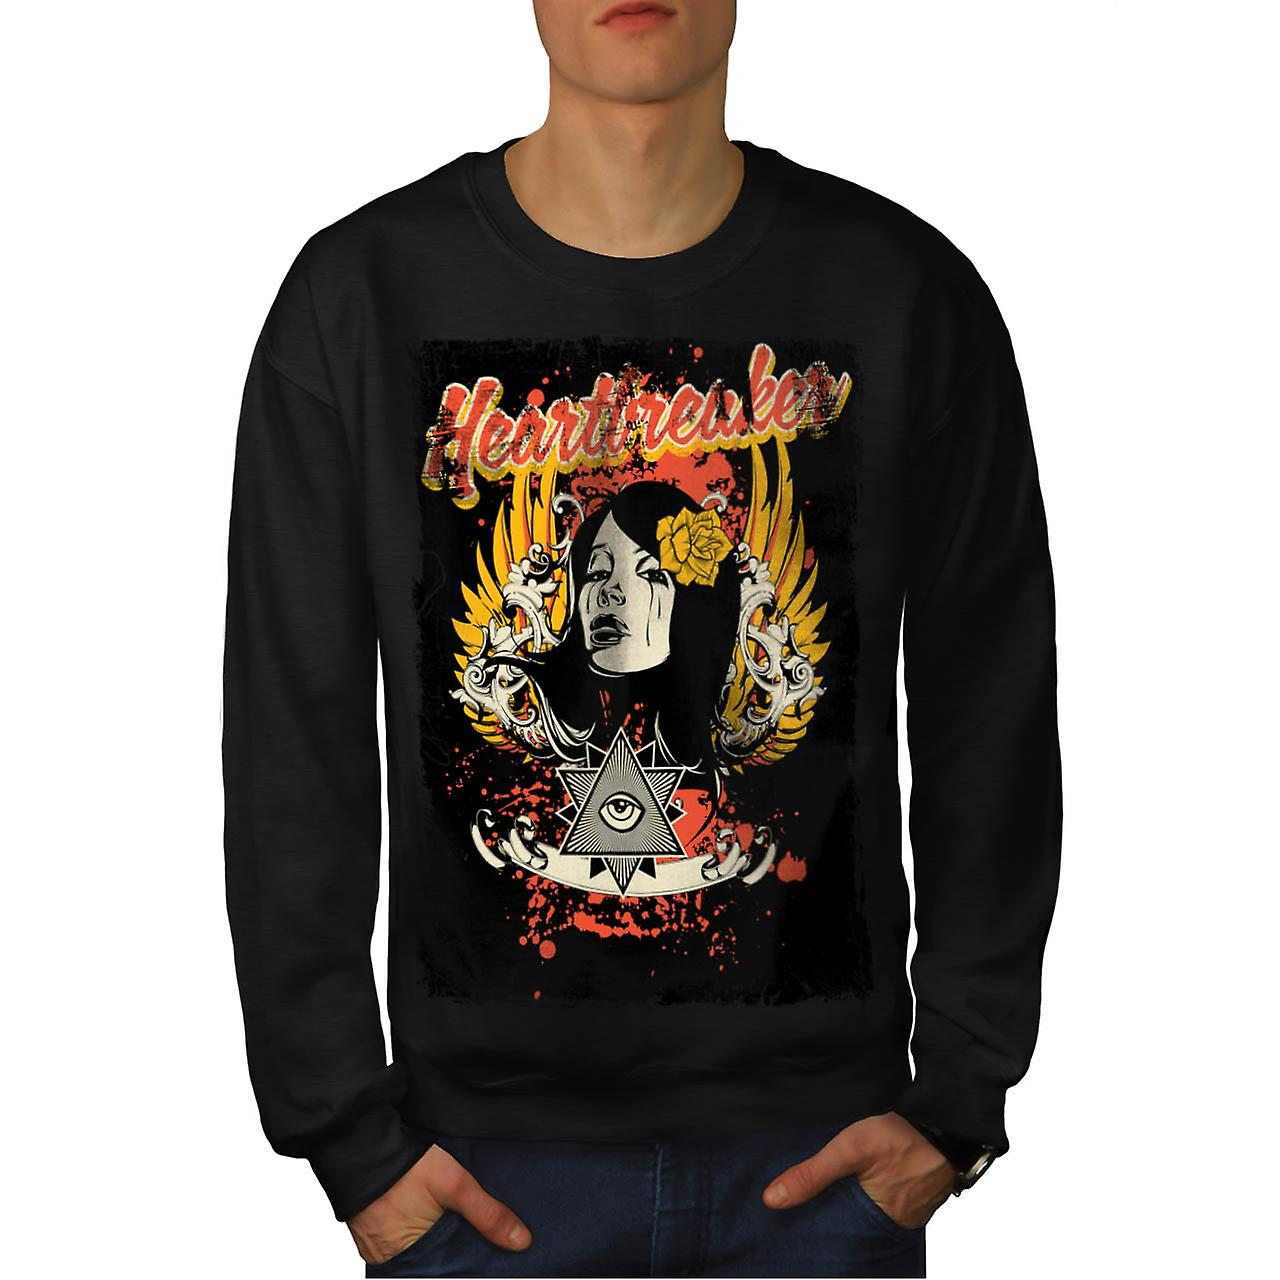 Heart Breaker Society Illuminati Men Black Sweatshirt | Wellcoda